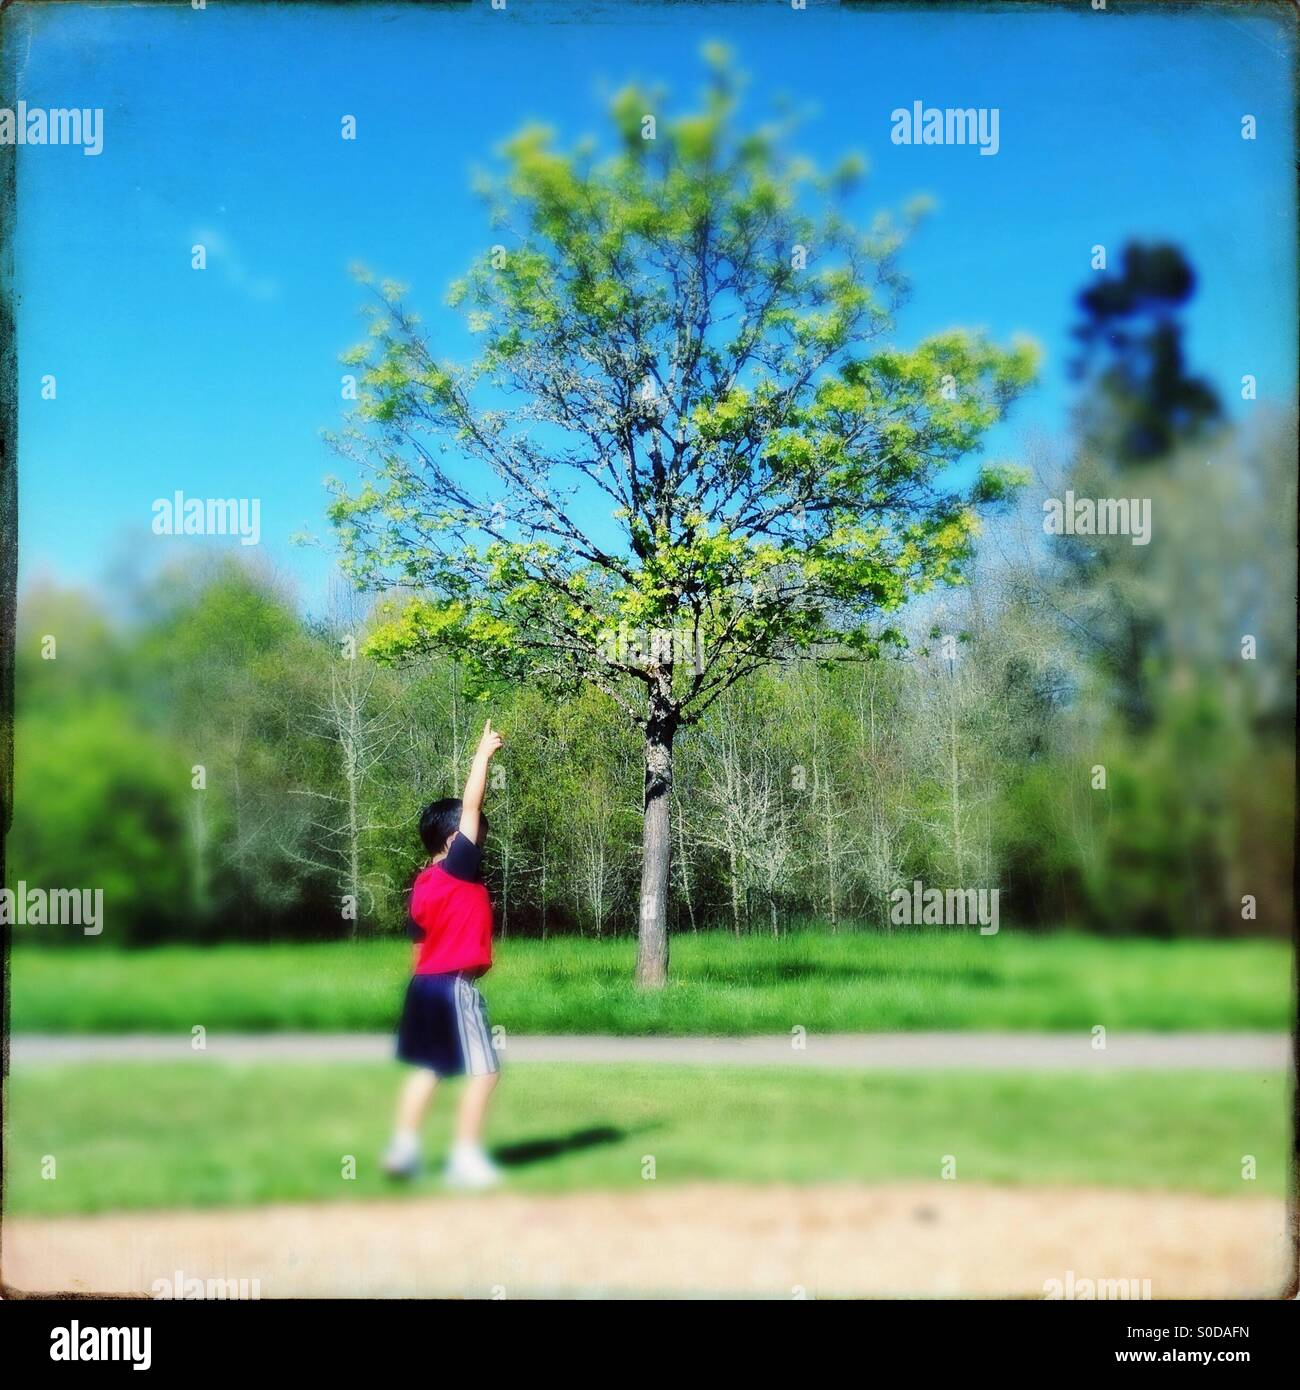 Young boy pointing up at tree on a sunny day. - Stock Image